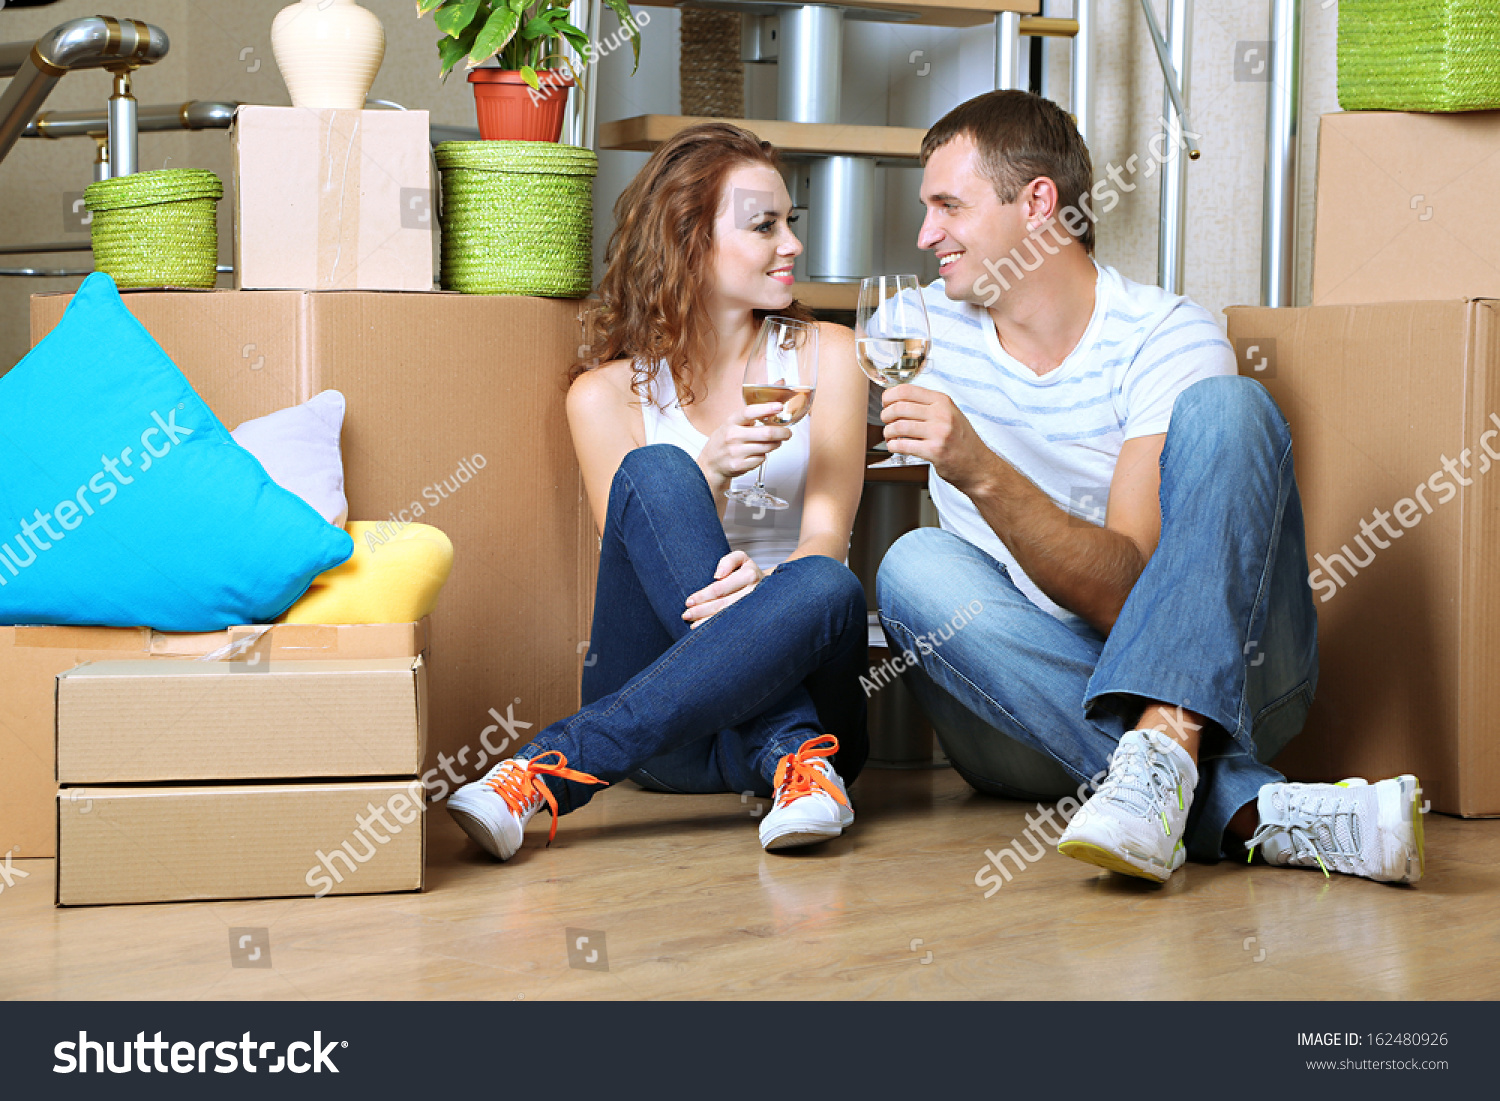 Young couple celebrating moving to new home sitting among boxes stock photo 162480926 shutterstock - Young couple modern homes ...